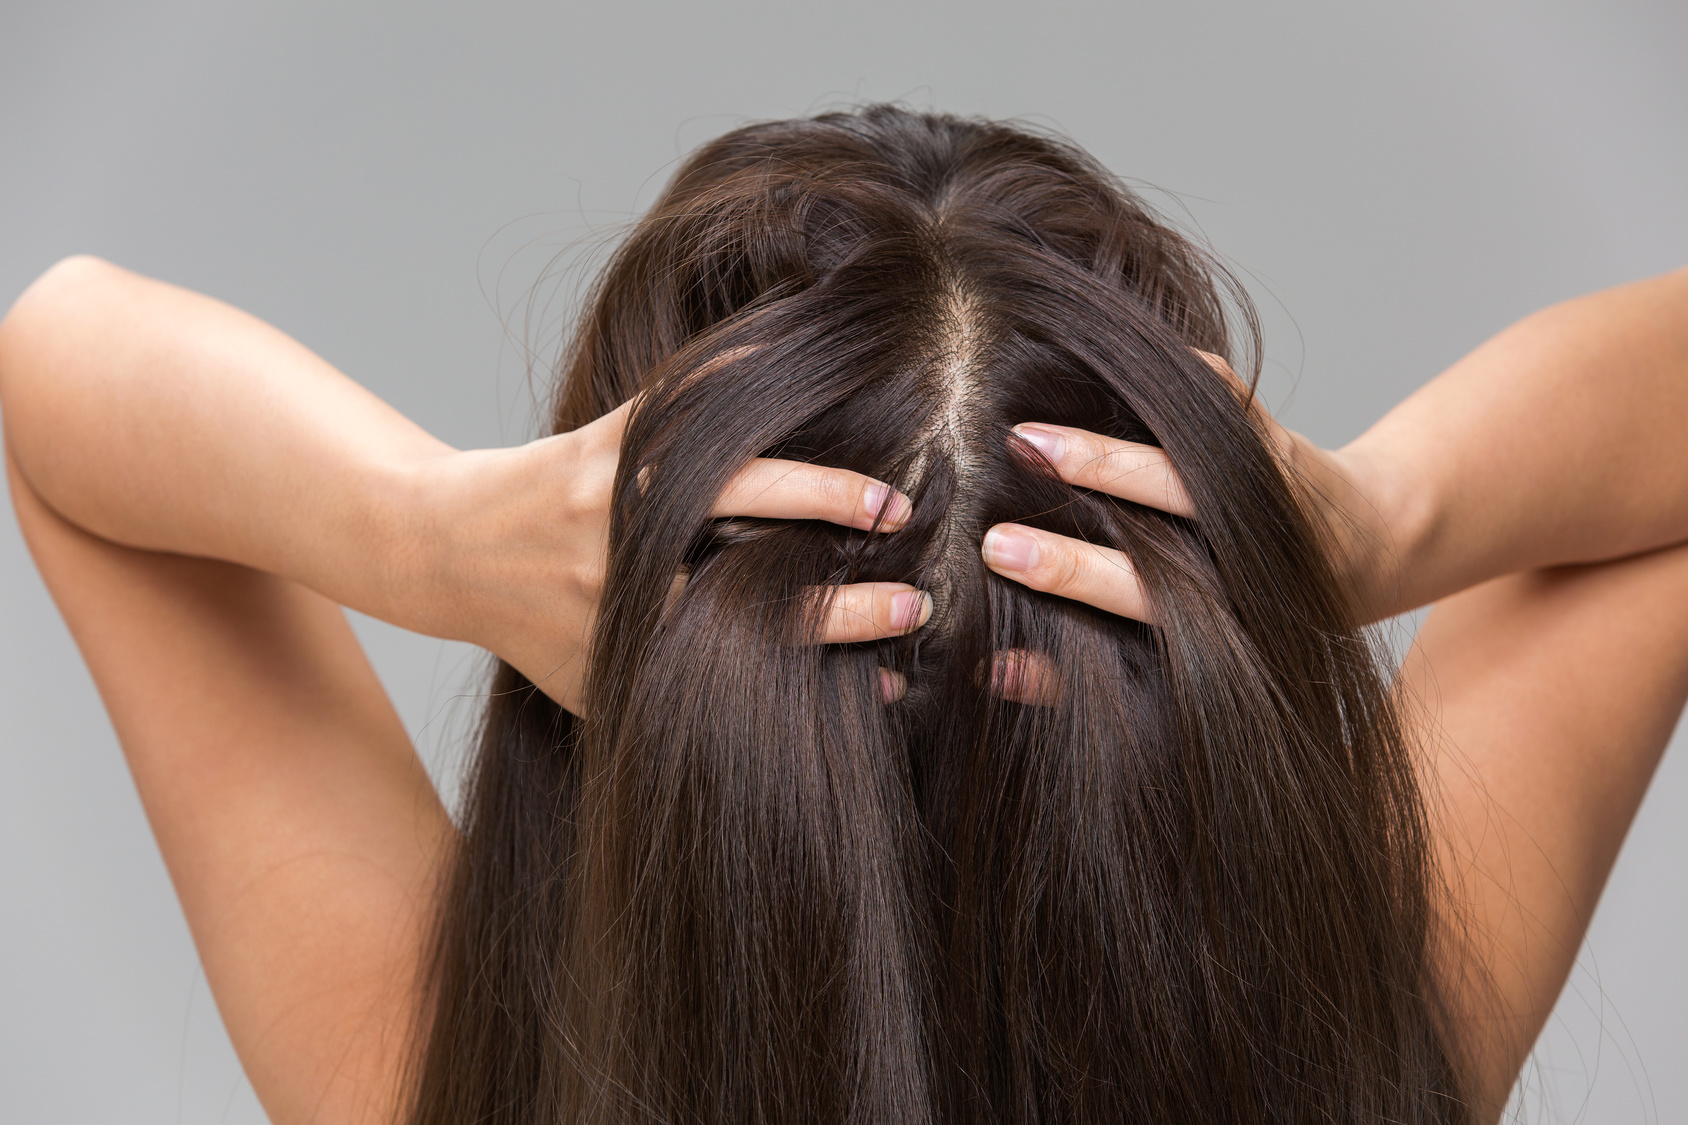 how to scalp massage 2